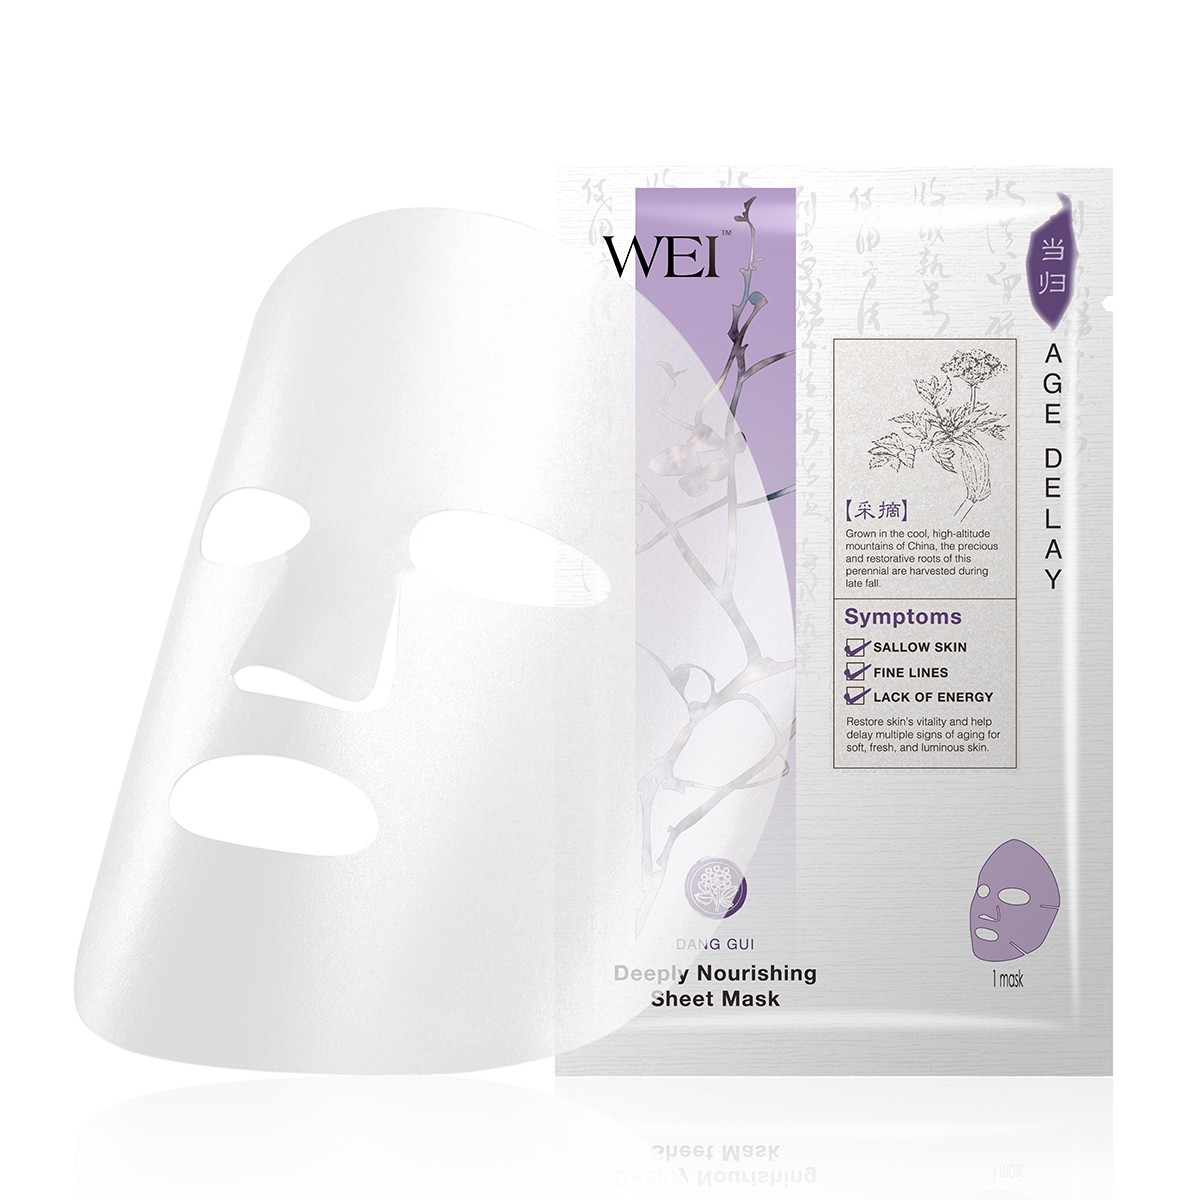 Review Wei Beauty Dang Gui Deeply Nourishing Sheet Mask Weibeauty Soft Case Emerald Black Berry Bb Aurora Jacket Smooth Touch Dove The Dan Contains Pronounced Gway Which Dates Back All Way To 400bc And Is Known As